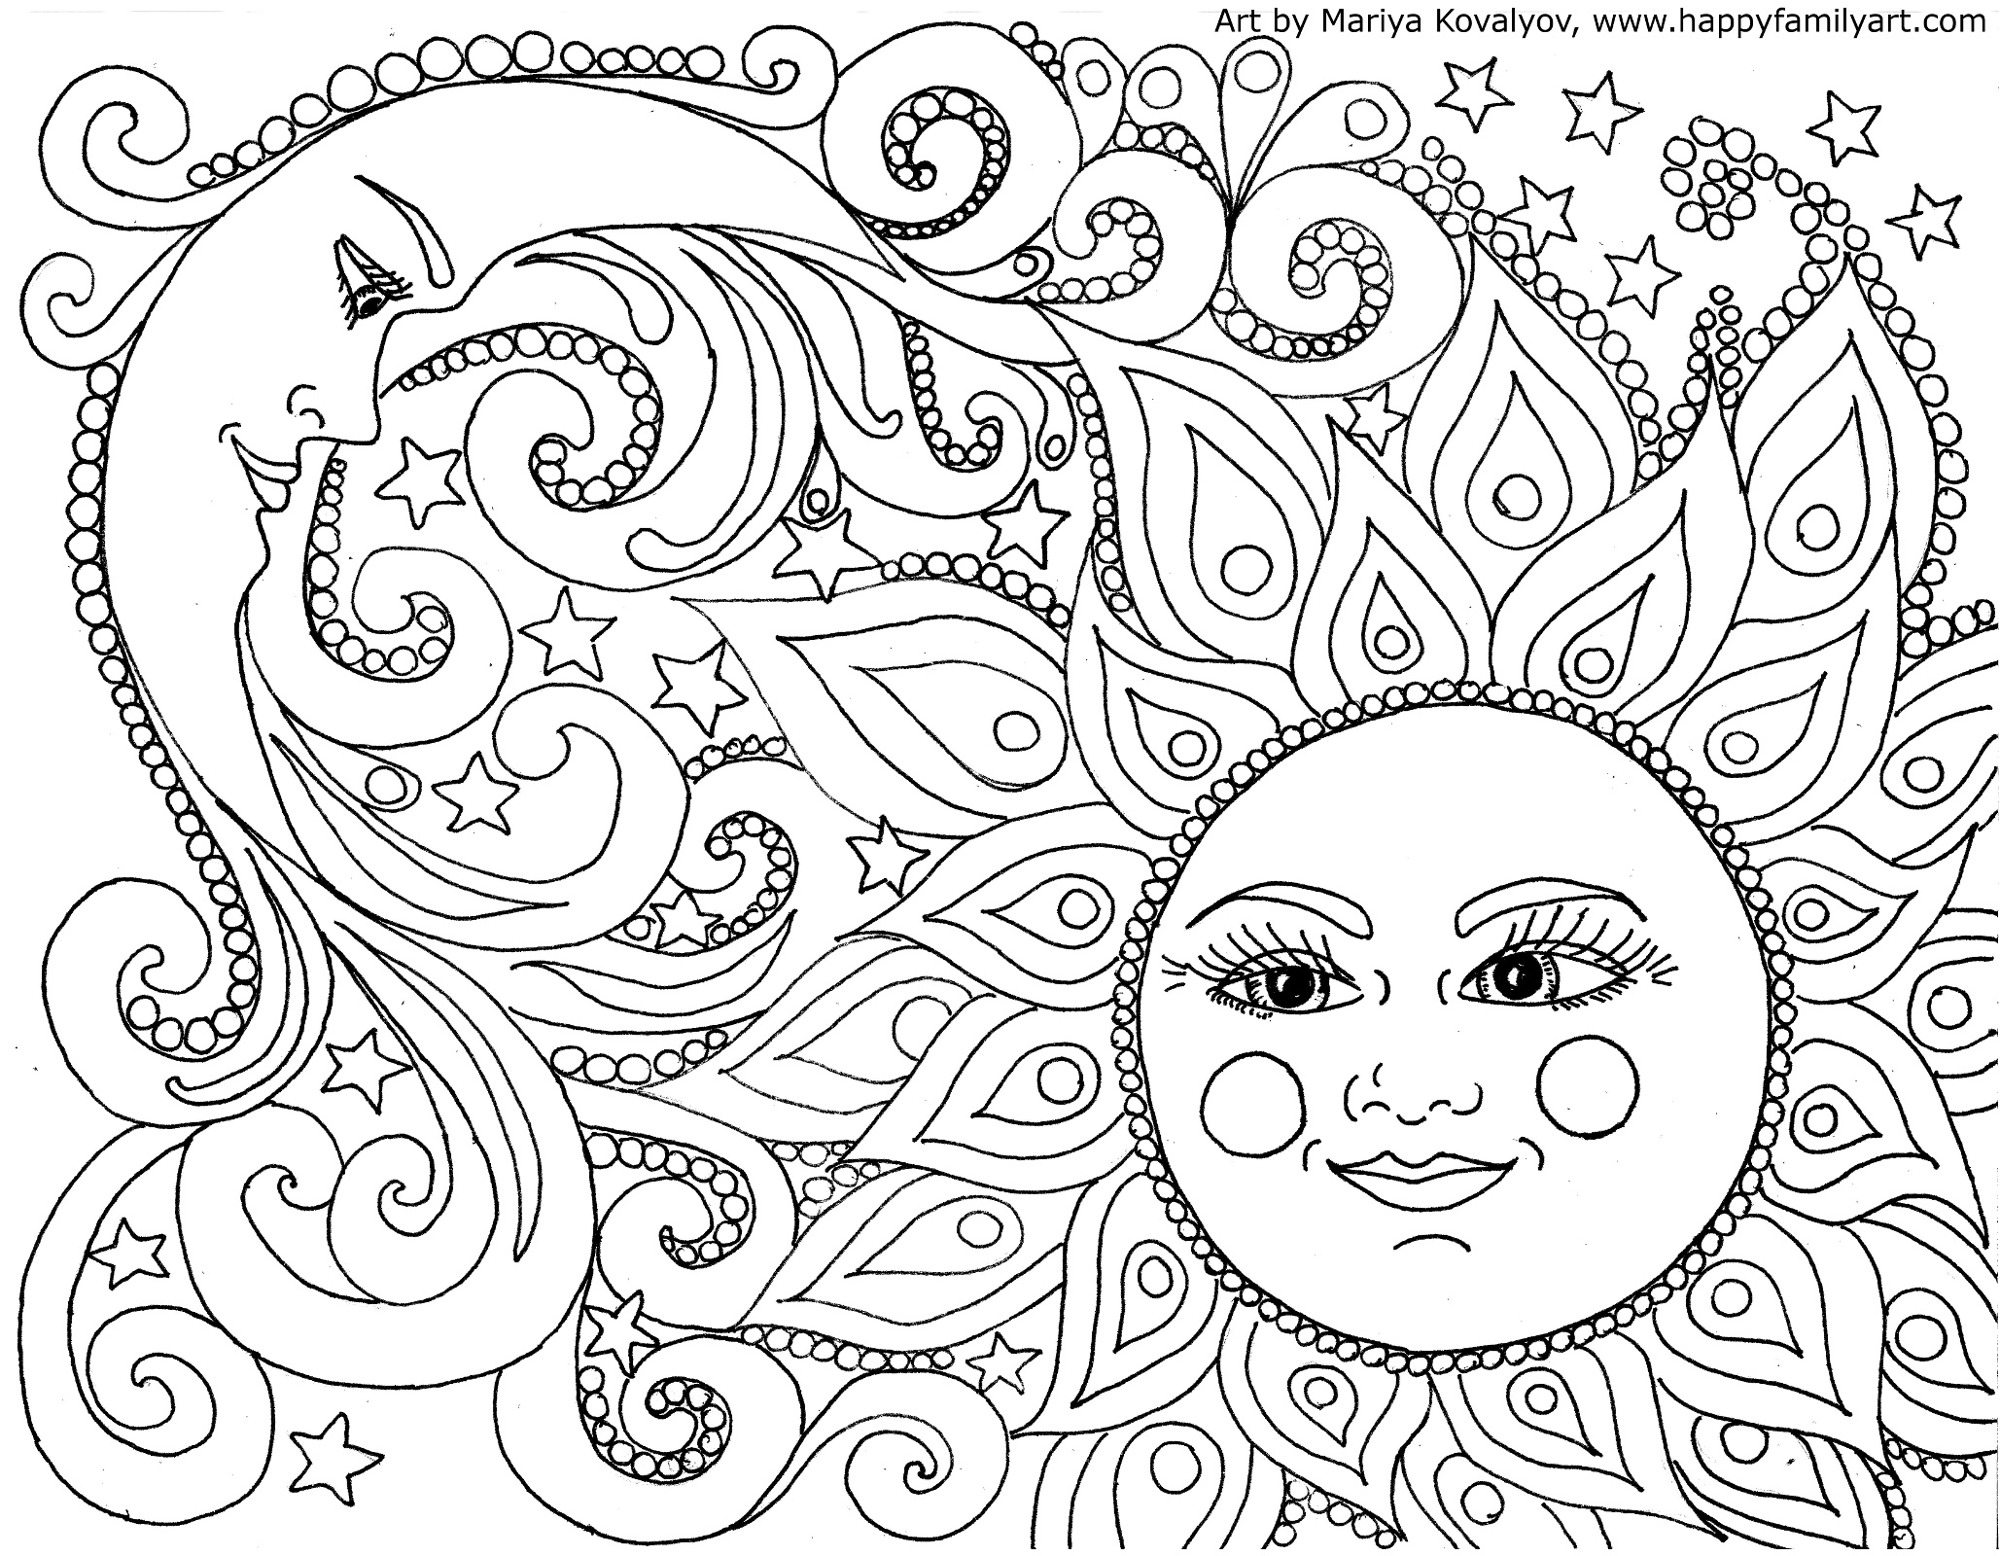 Happy Family Art - Original And Fun Coloring Pages - Free Printable Coloring Pages For Adults Pdf